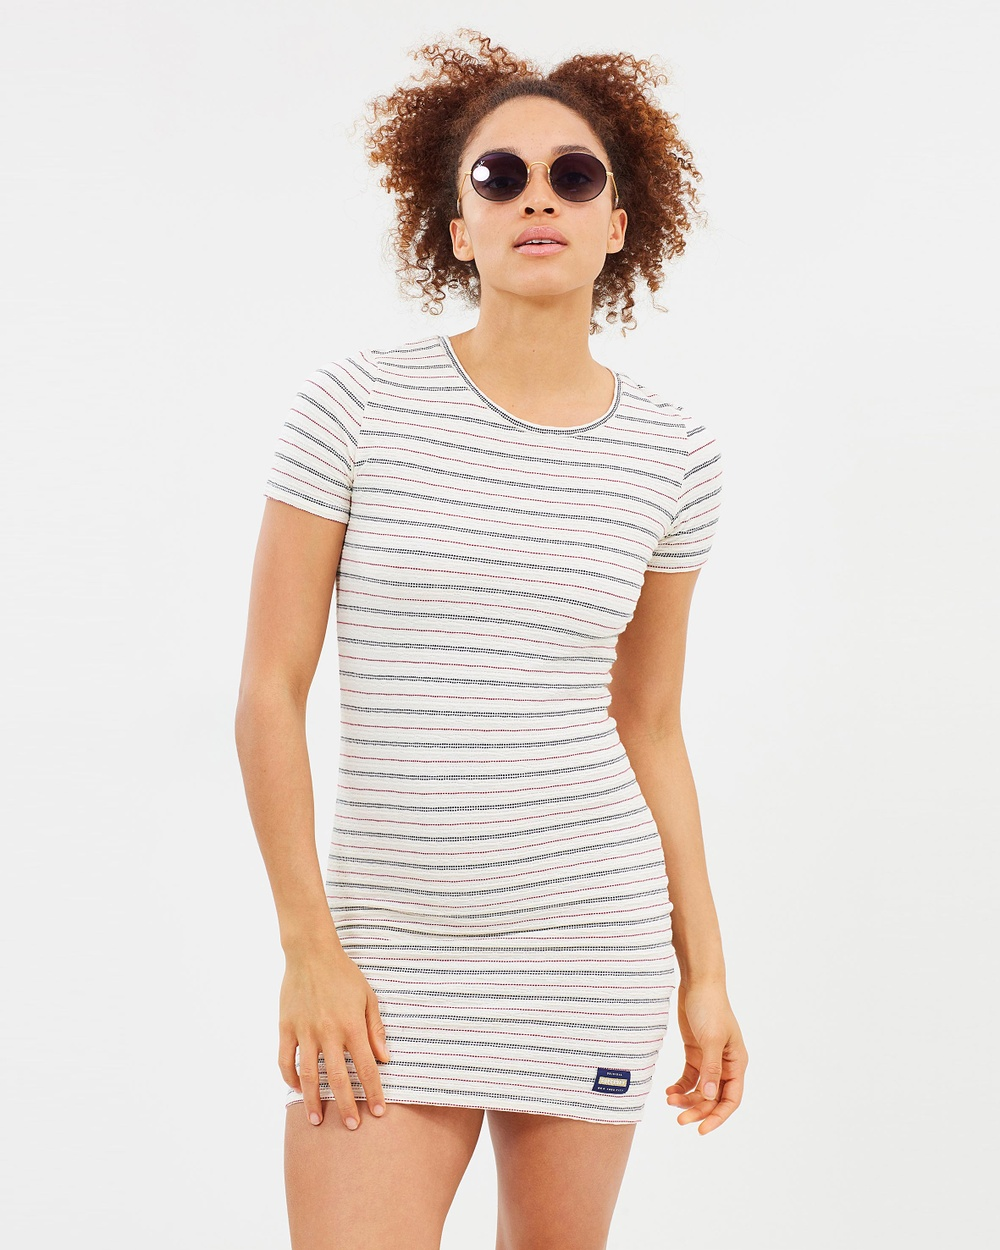 Superdry Textured Pacific Tee Dress Bodycon Dresses Cream Textured Pacific Tee Dress